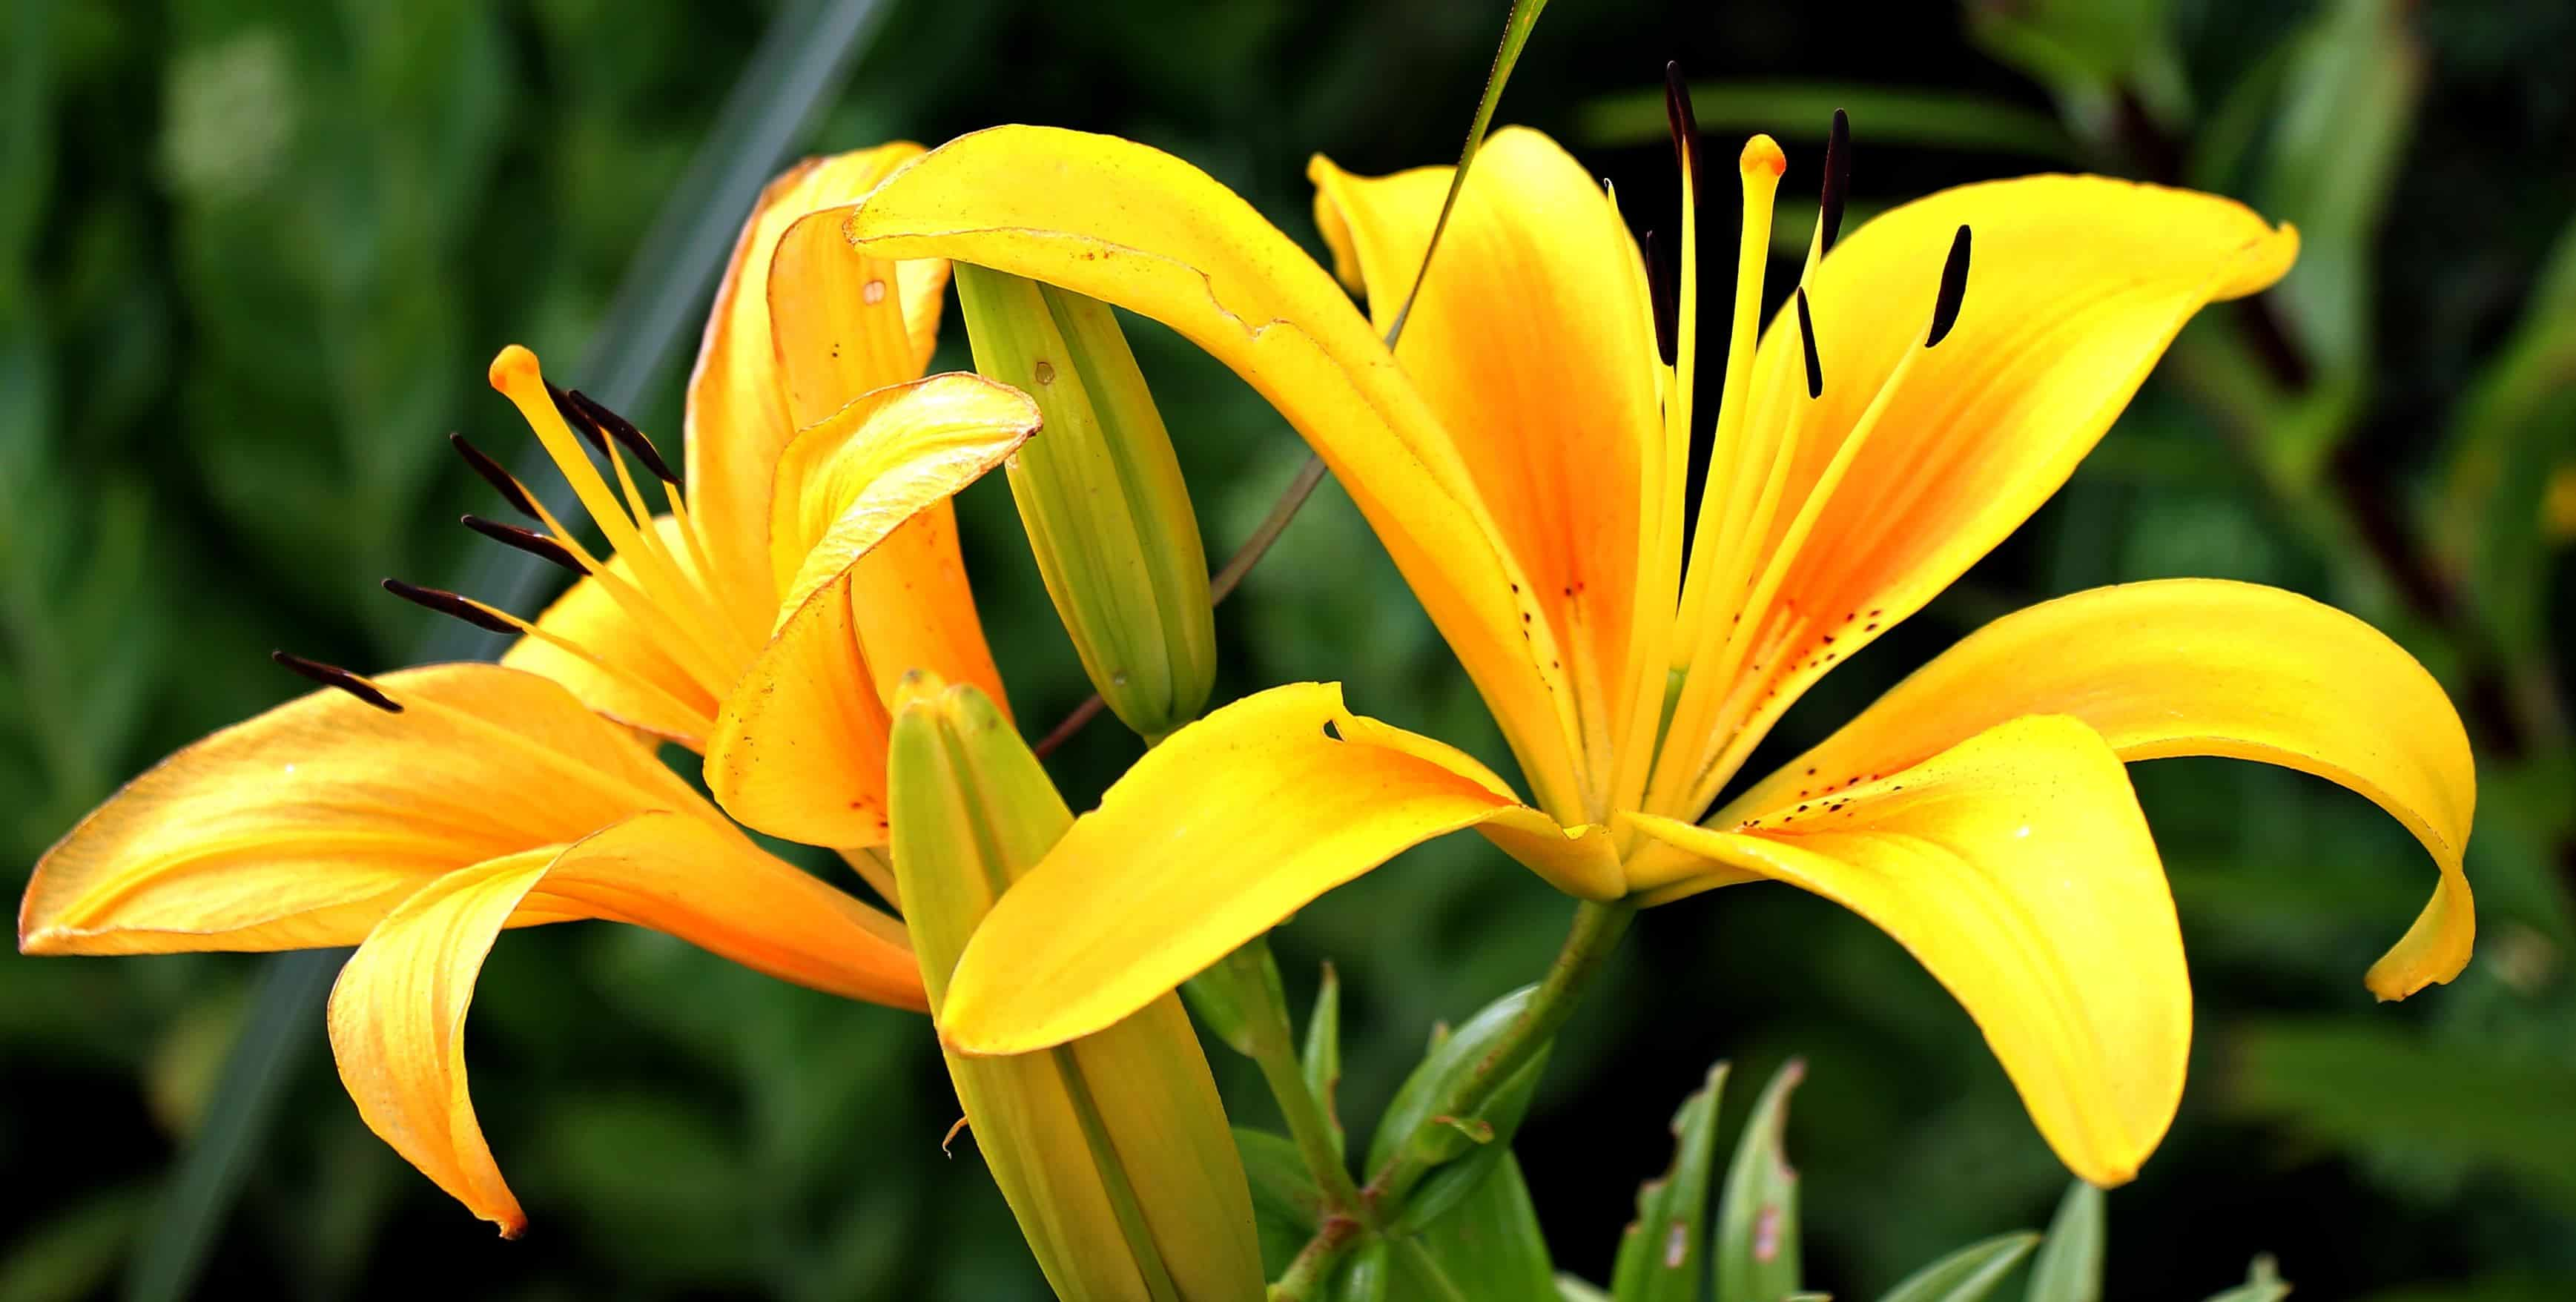 Free picture yellow lily flower pistil leaf garden nature yellow lily flower pistil leaf garden nature summer plant petal blossom izmirmasajfo